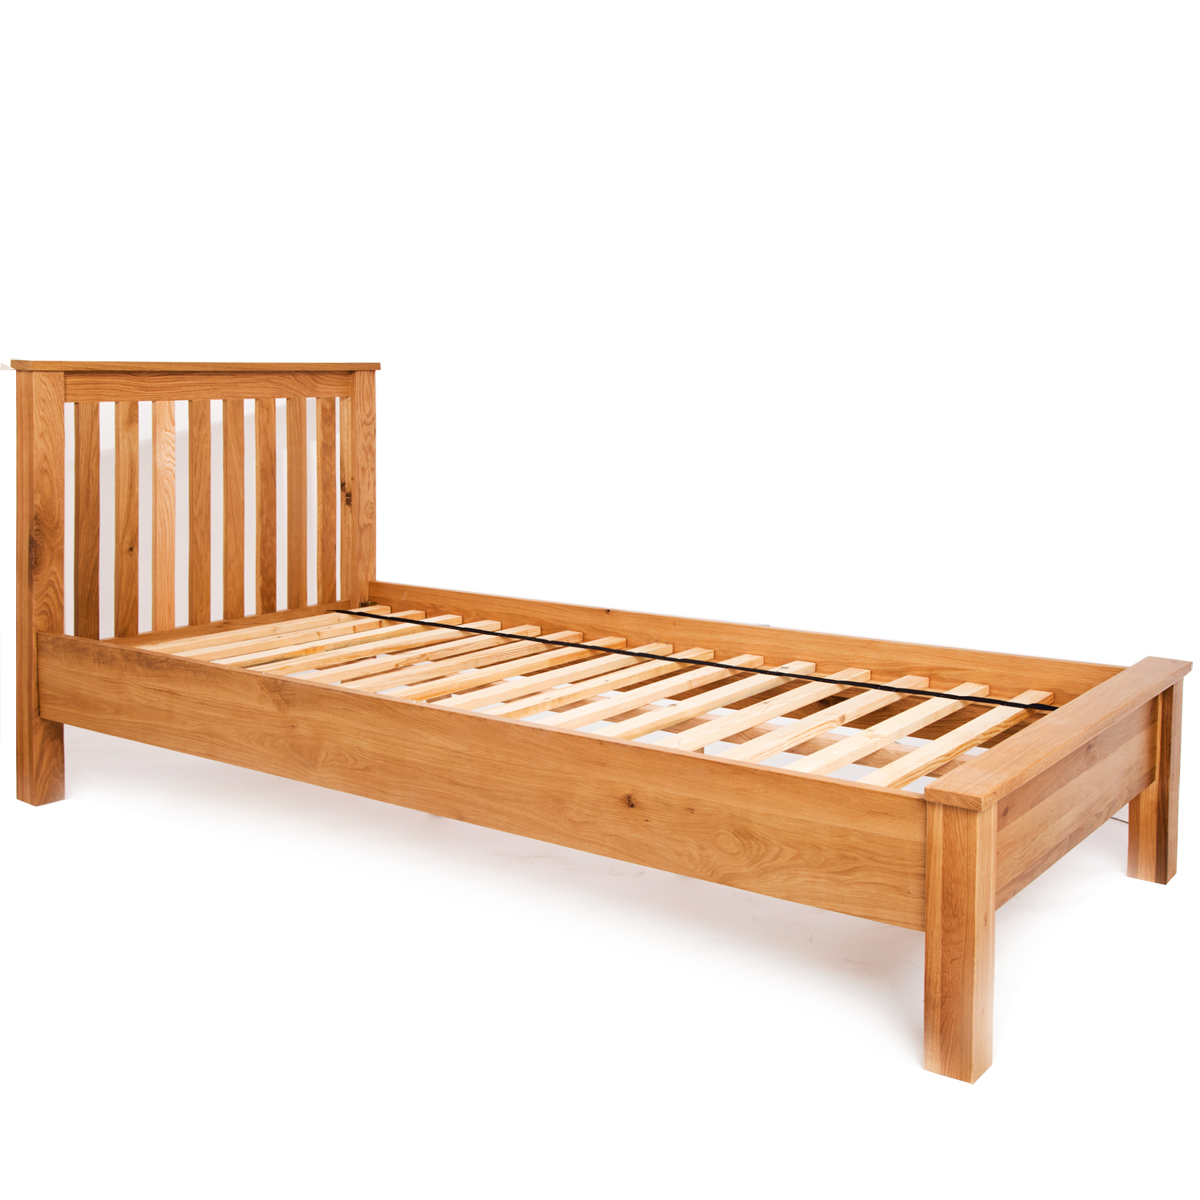 3ft Single Bed Frame Low End Bedstead Solid Wood Natural